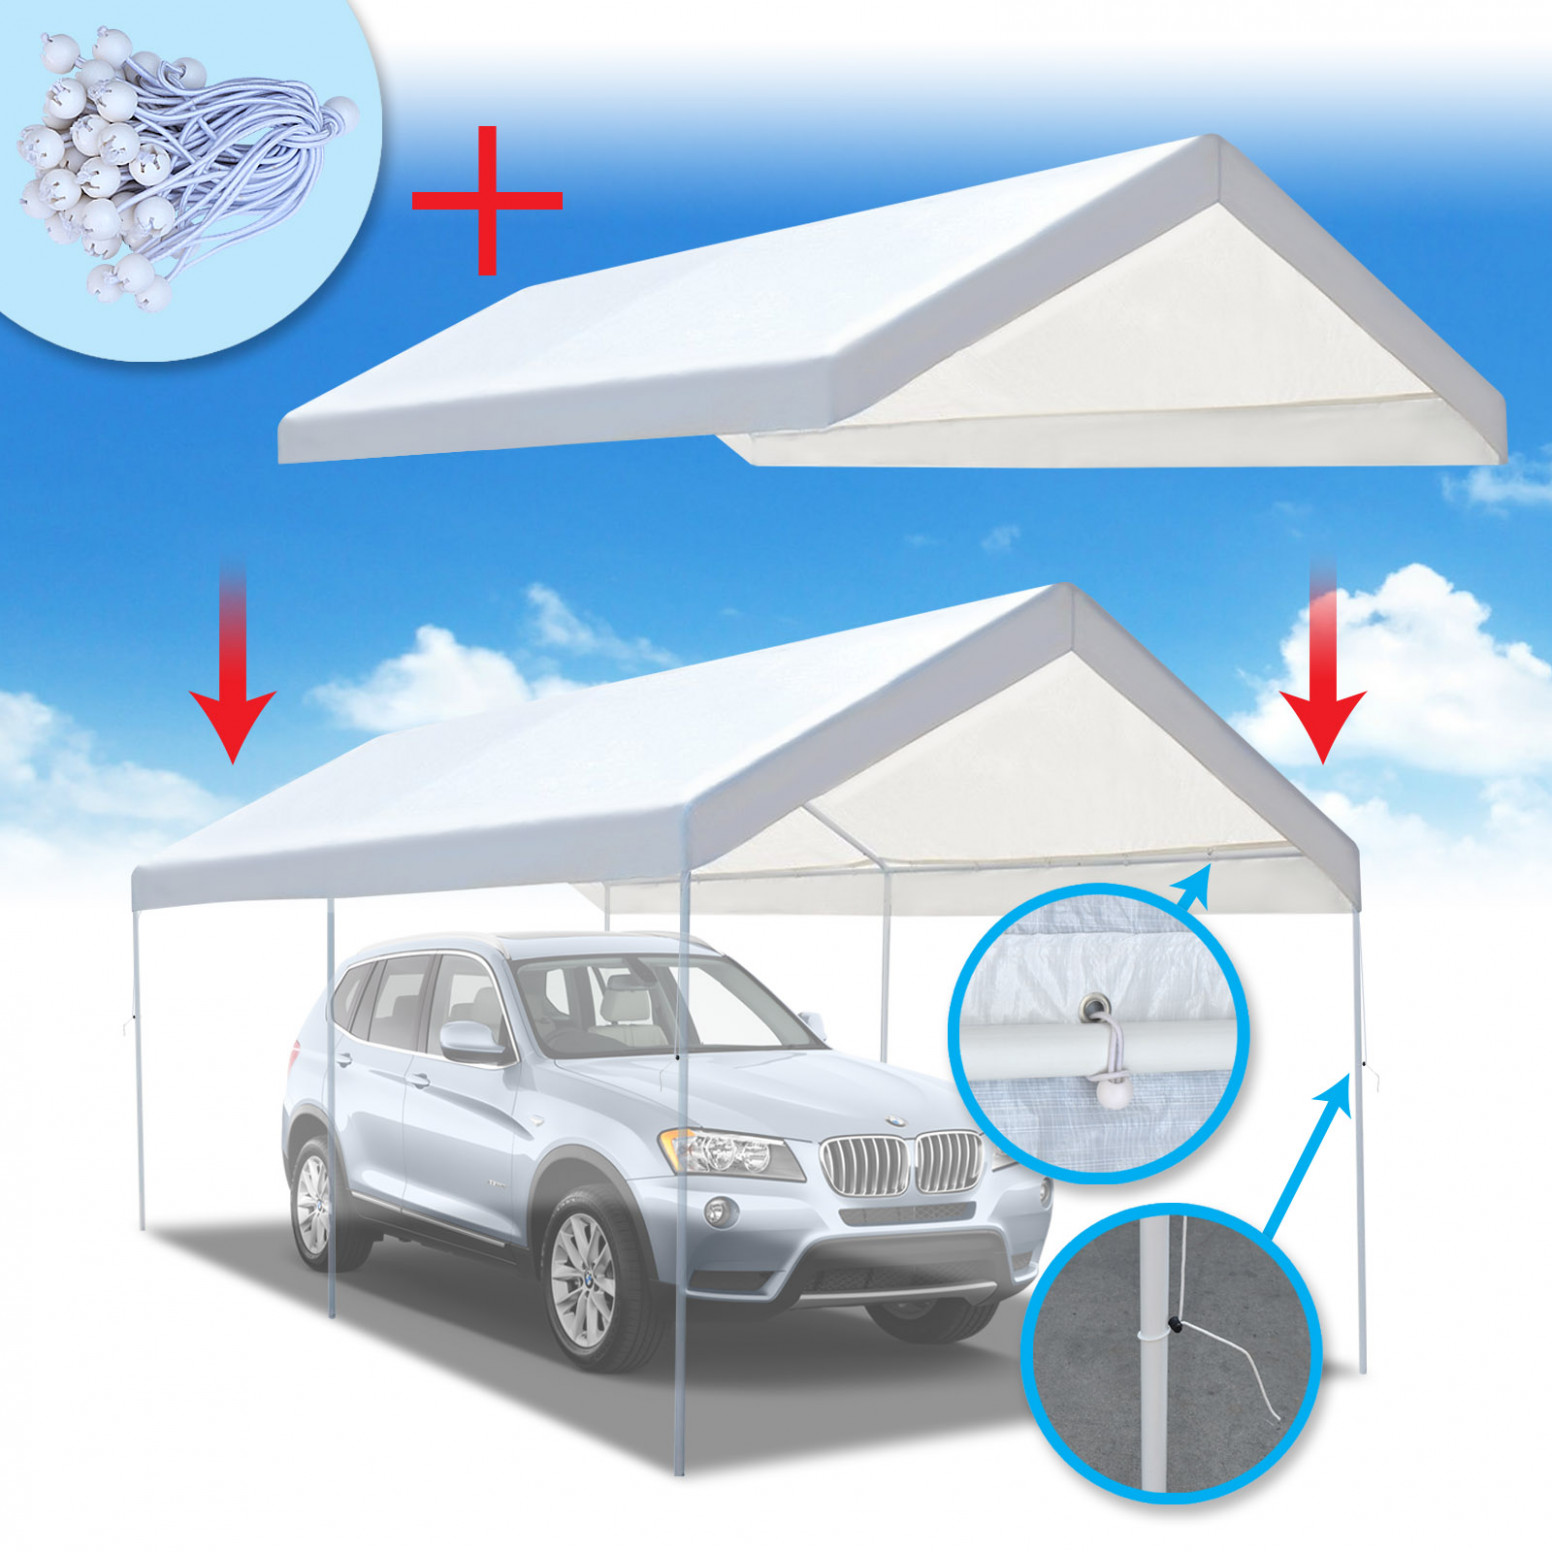 Strong Camel New 8'x8' Carport Replacement Canopy Cover For Tent Top Garage Shelter Cover W Ball Bungees (Only Cover, Frame Is Not Included ) Carport Tent Replacement